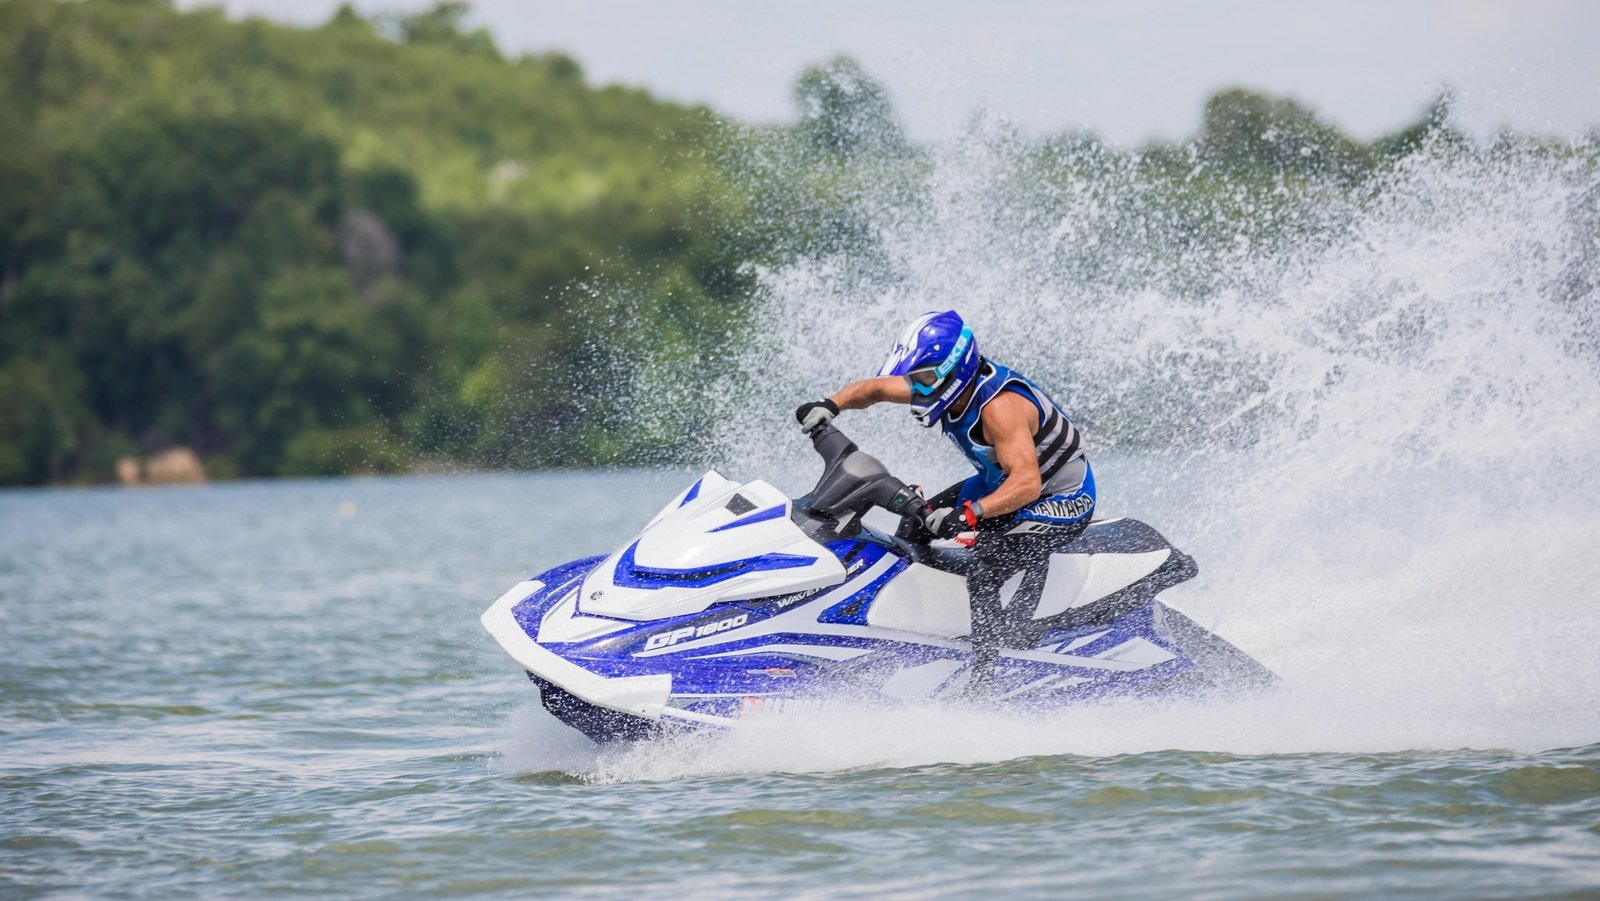 2018 Yamaha Gp1800 Pictures Photos Wallpapers Top Speed